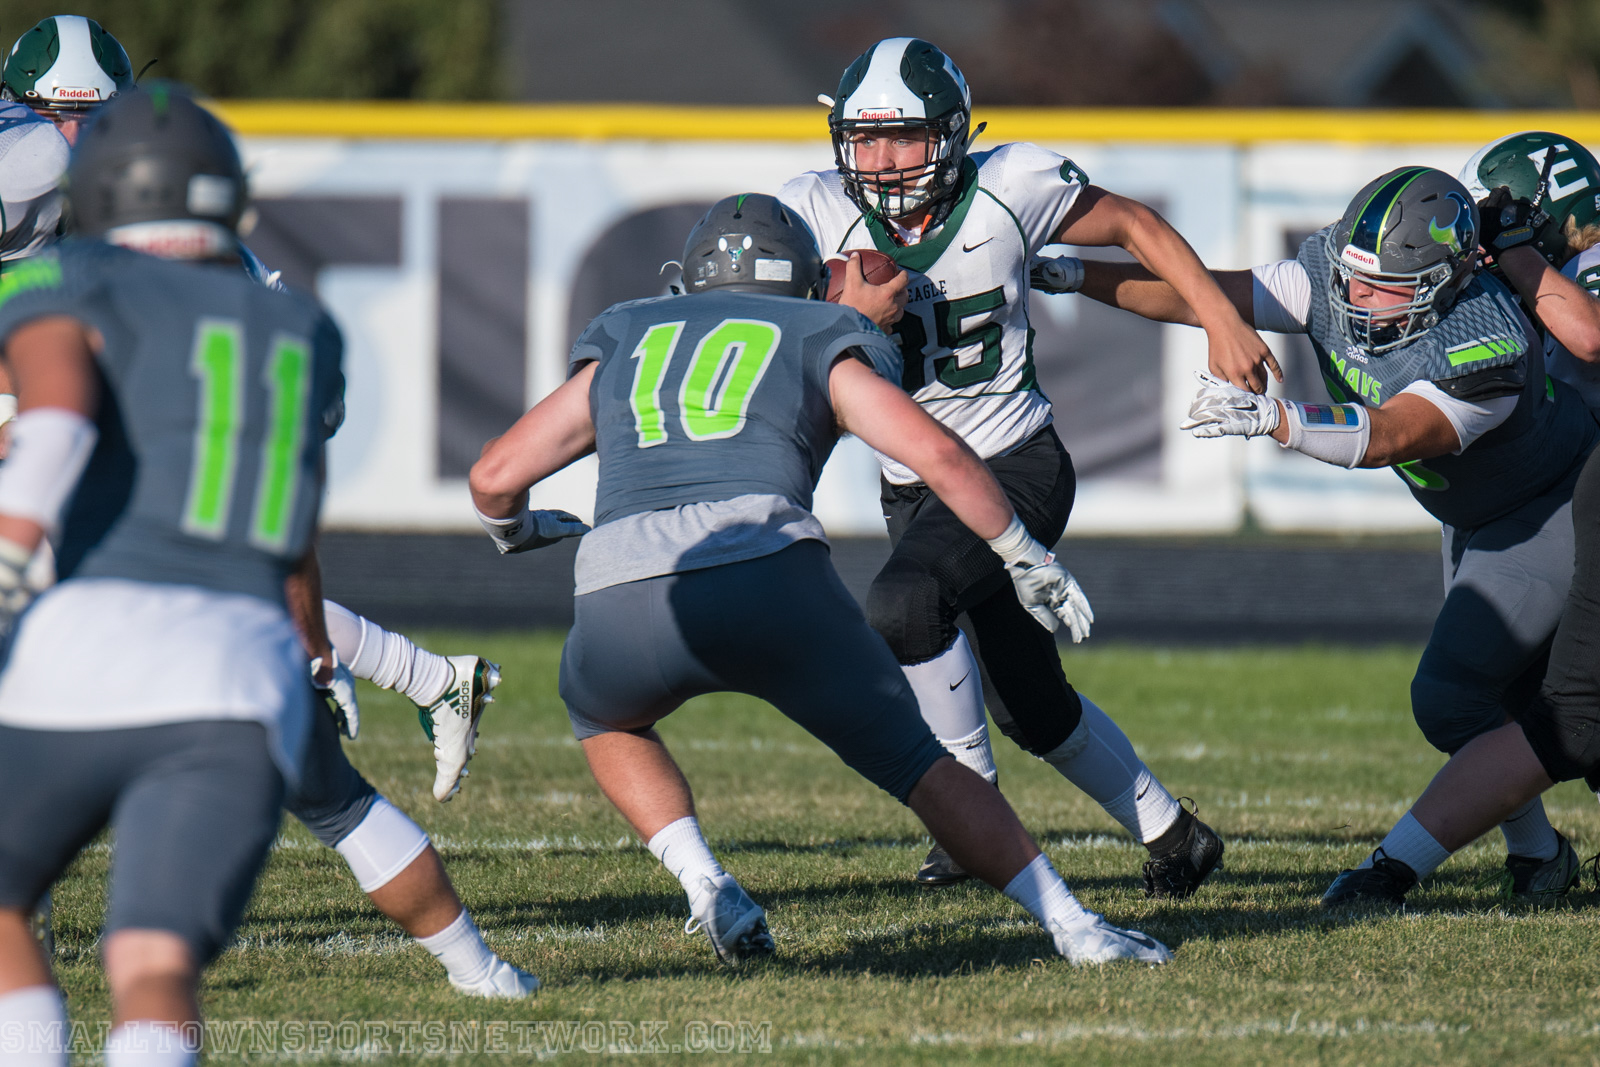 Mountain View Mavericks Fall To Eagle Mustangs